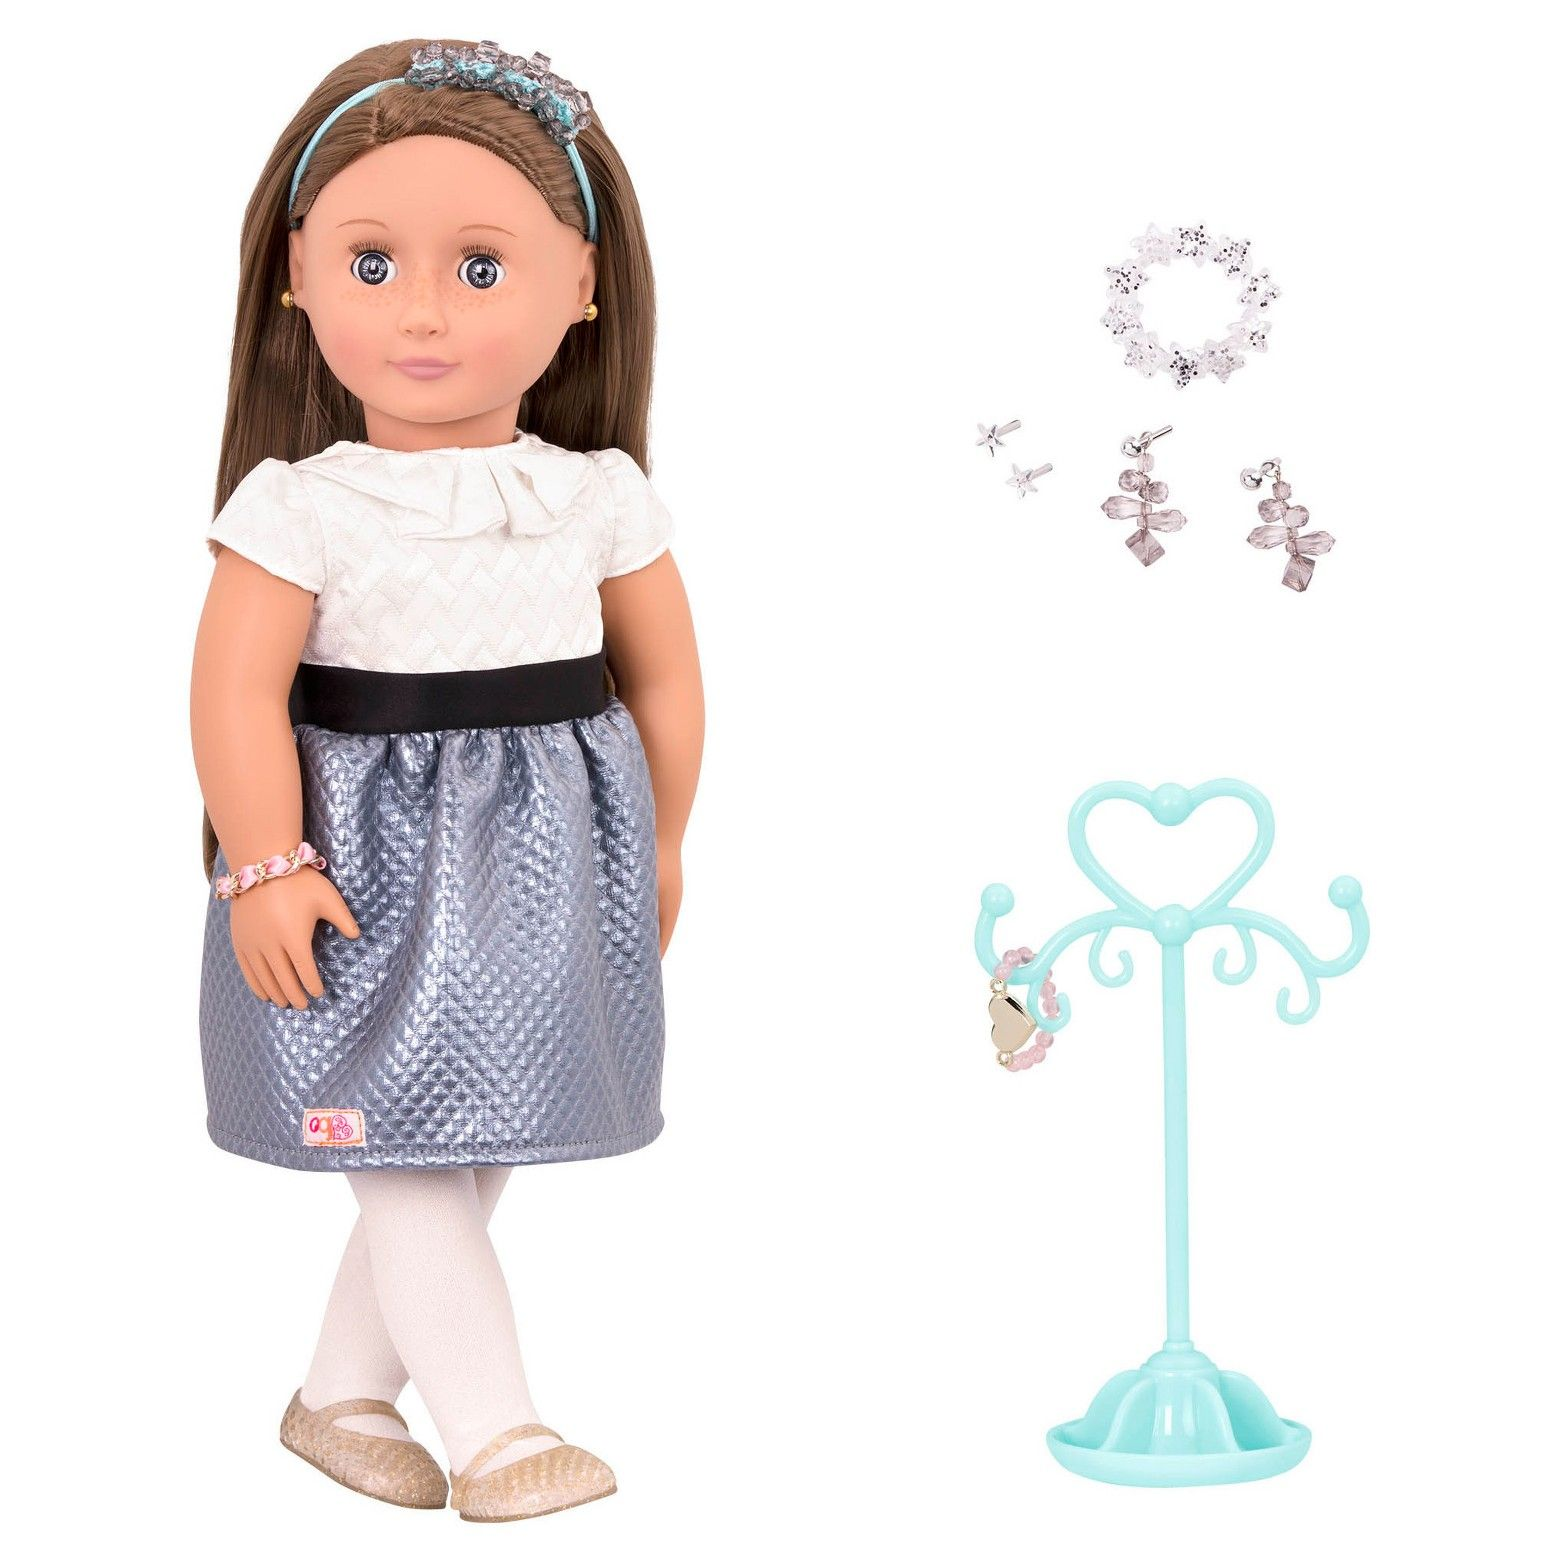 Our Generation Jewelry Doll Aliane Target Generation